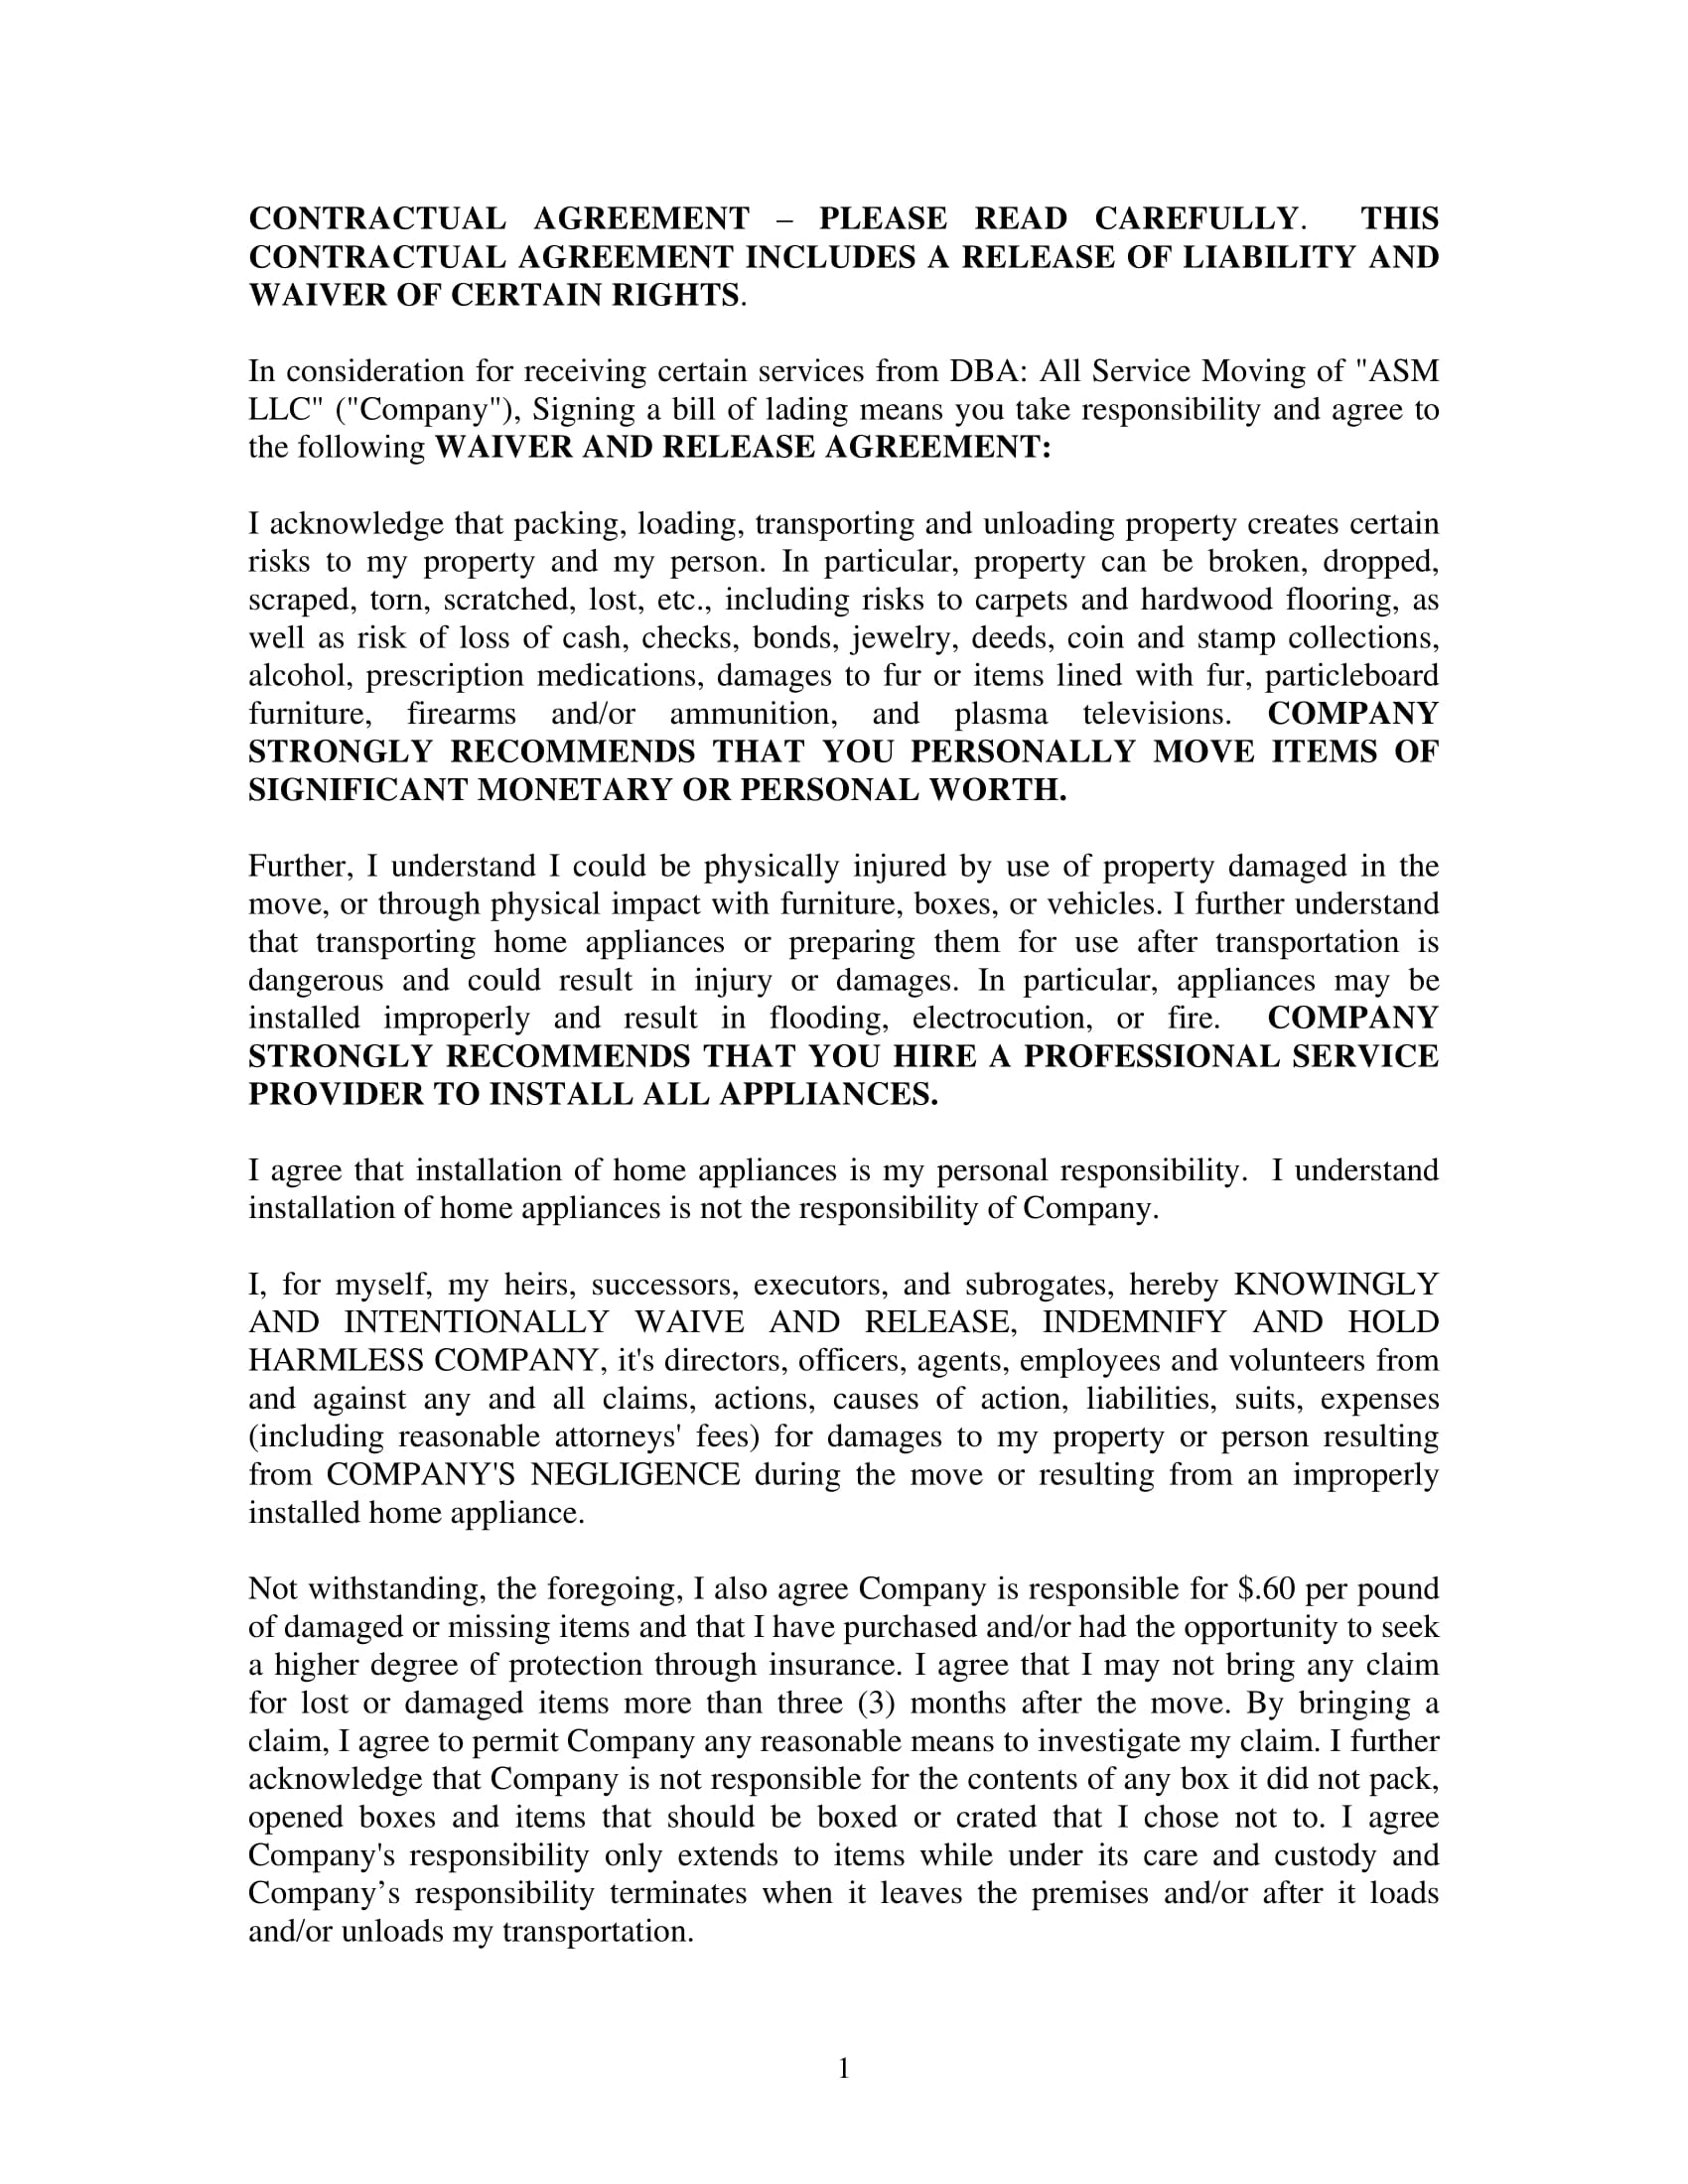 moving company contractual agreement template example 1